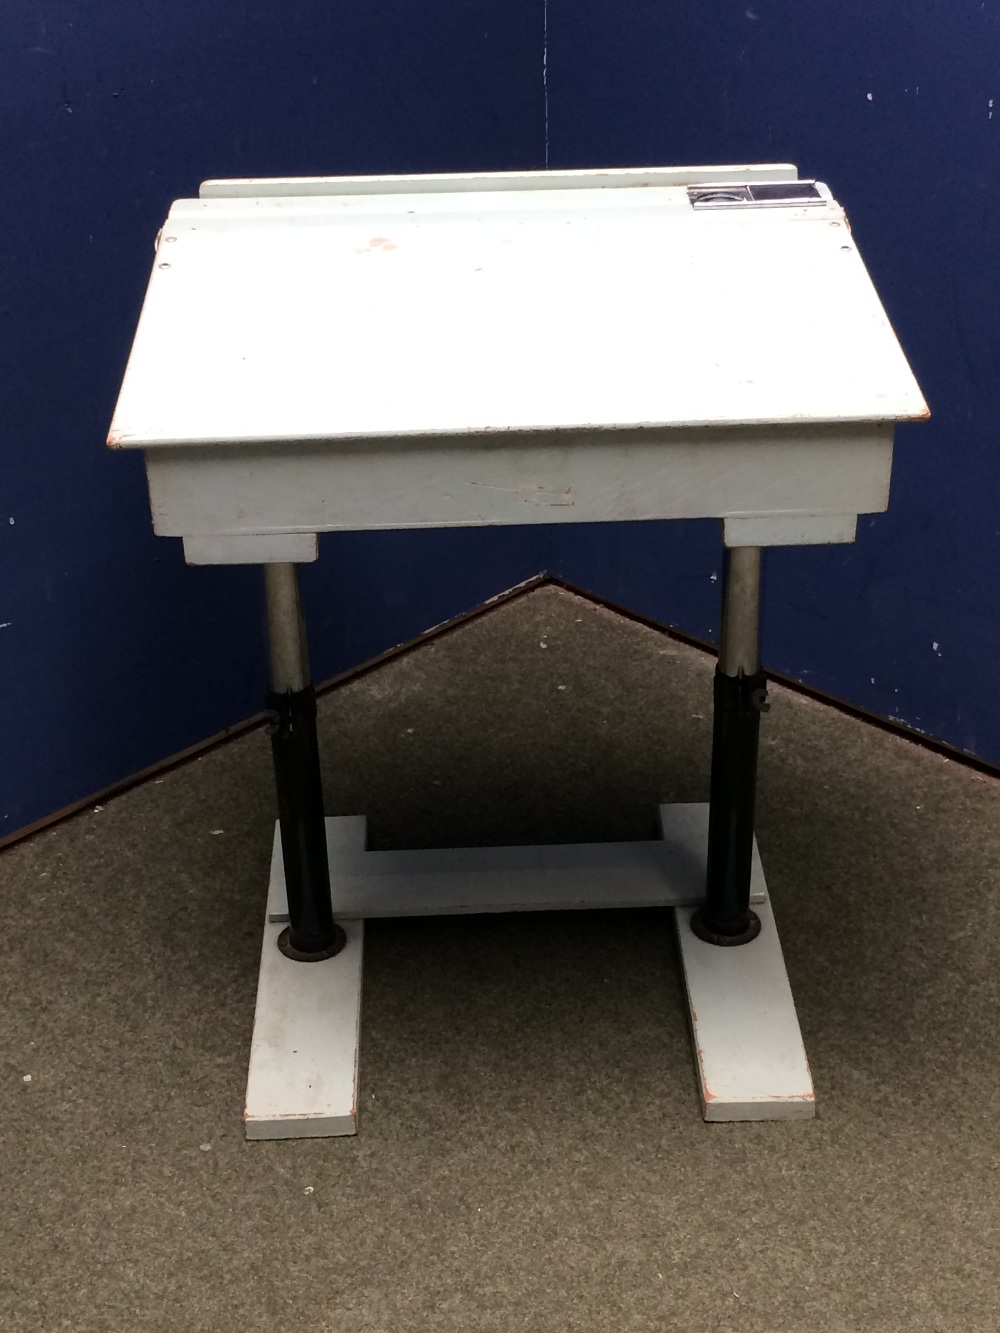 Lot 717 - 1950s childs desk with adjustable legs